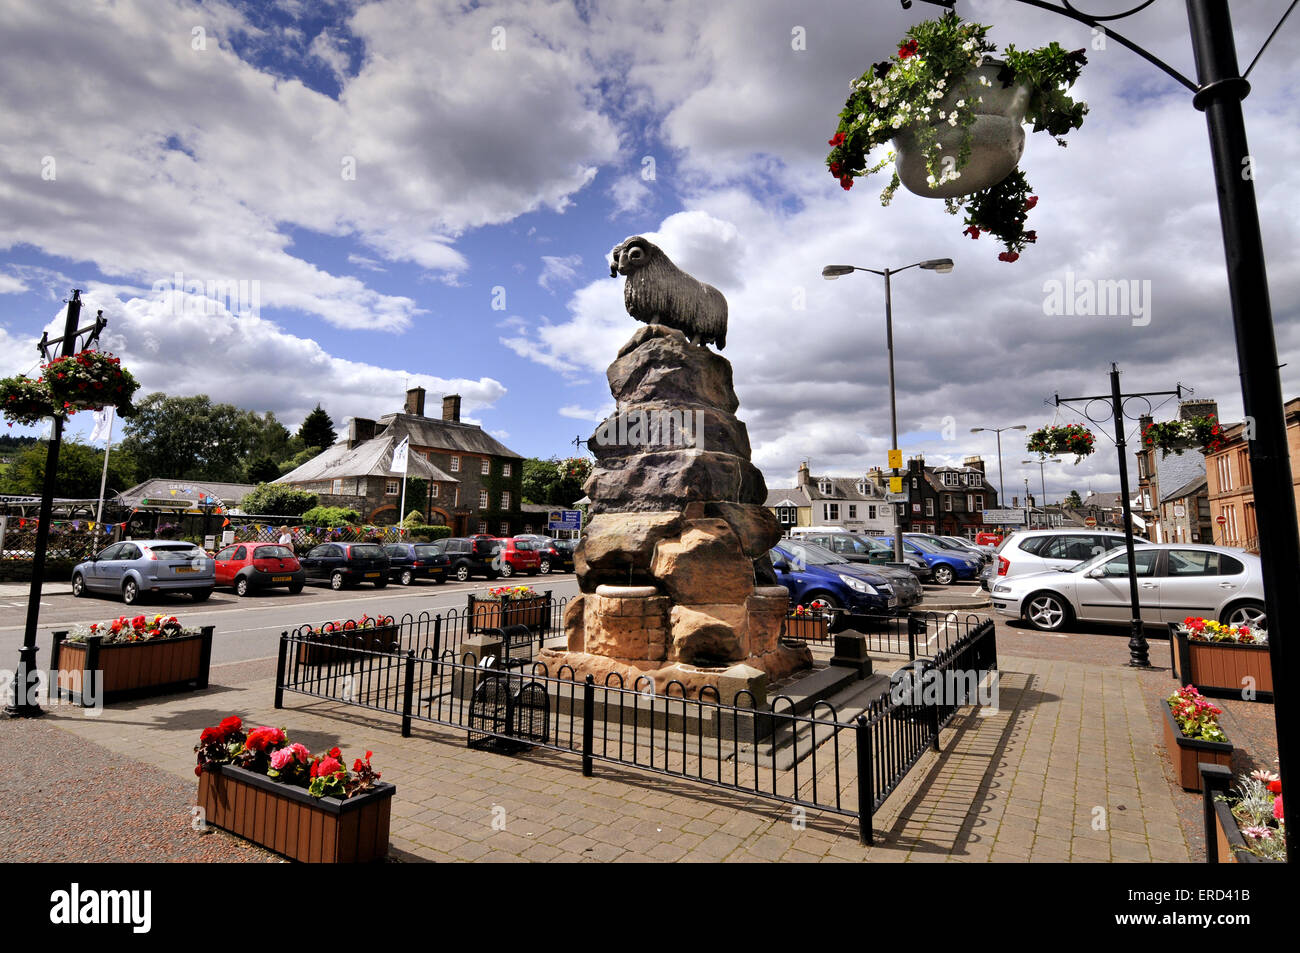 The Moffat Ram in Moffat town Centre, Dumfries and Galloway, Scotland - Stock Image